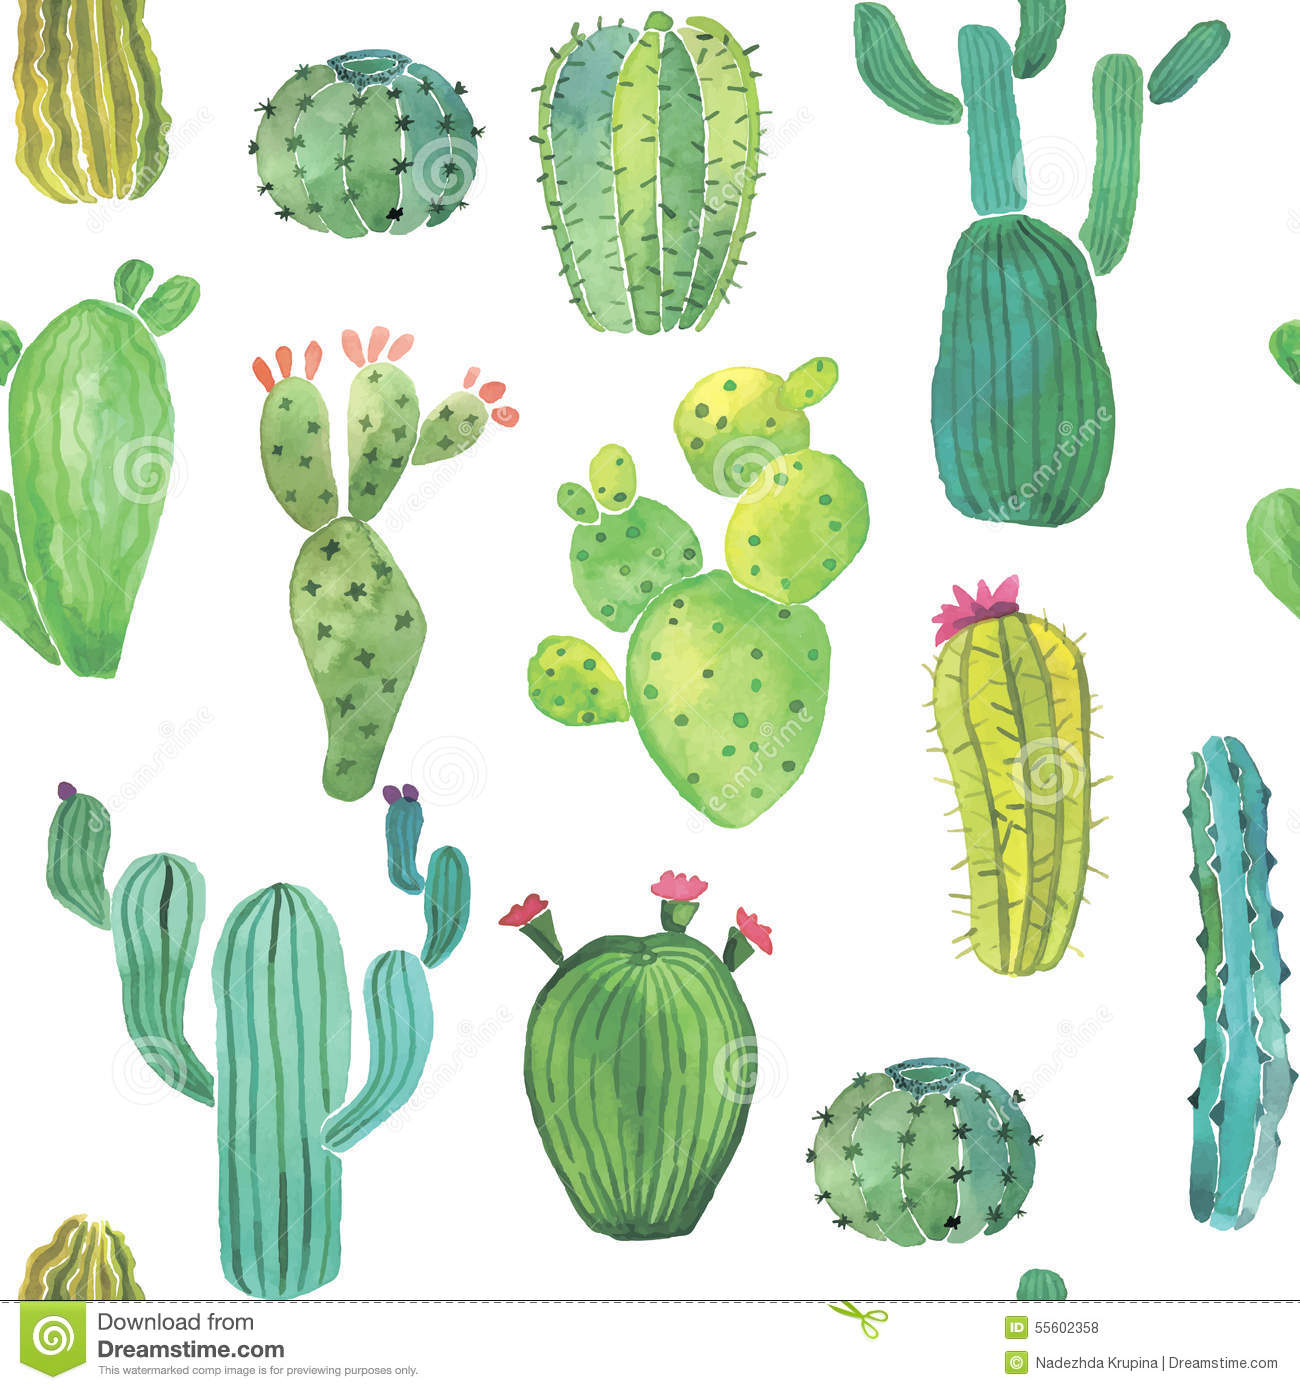 Watercolor Cactus Seamless Pattern Stock Vector Illustration Of Floral Watercolor